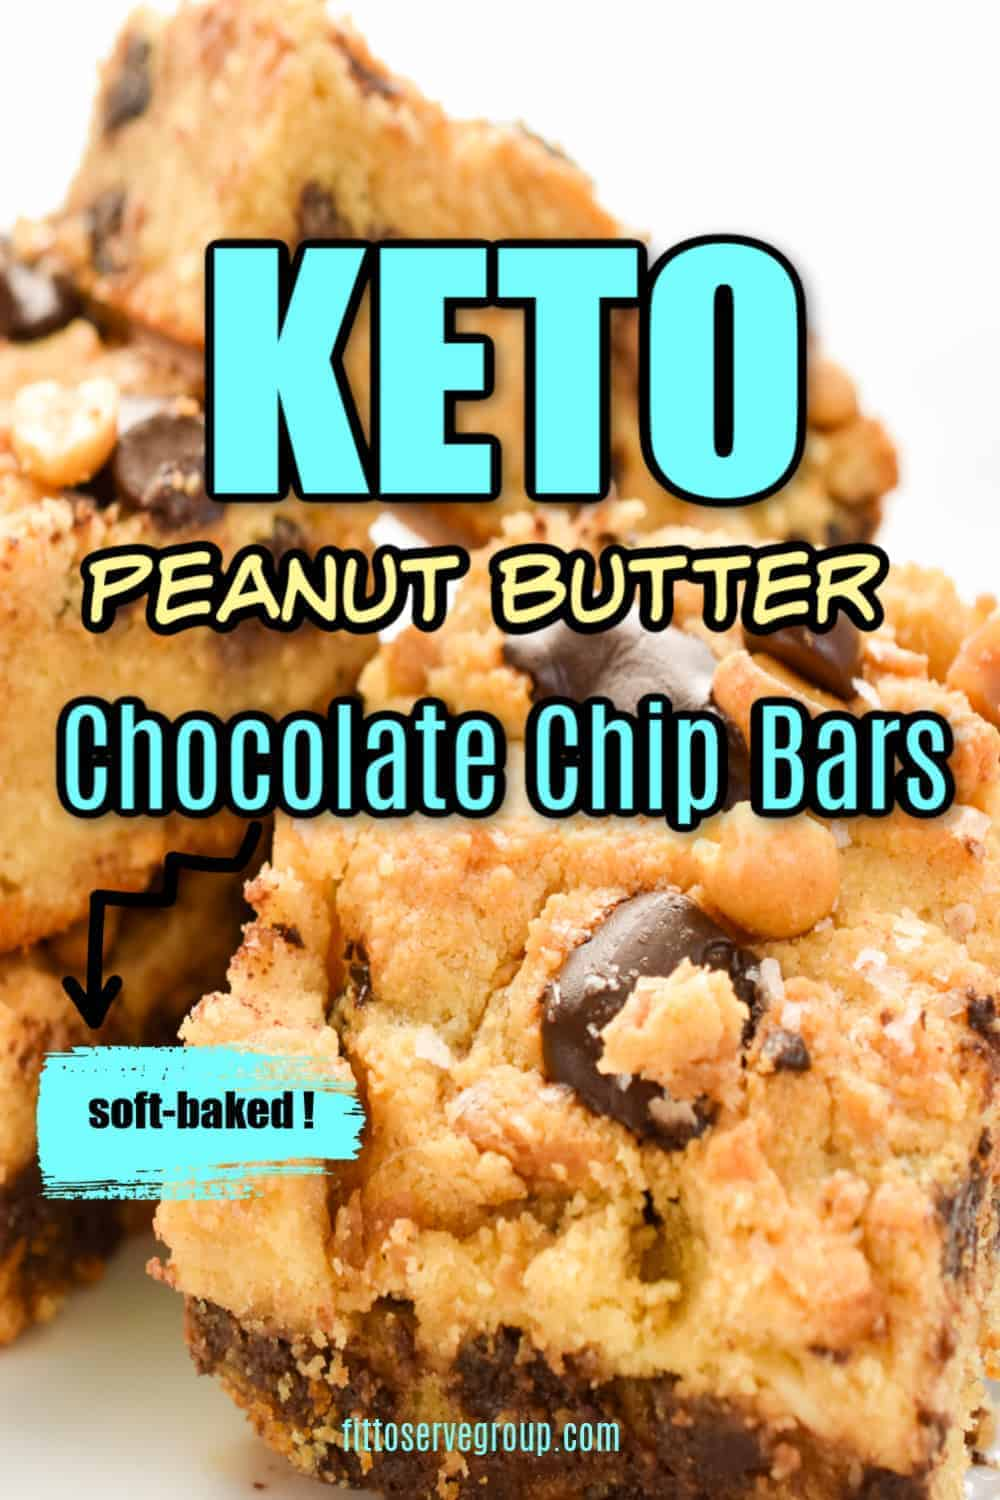 Keto Peanut Butter Chocolate Chip Bars Fittoserve Group